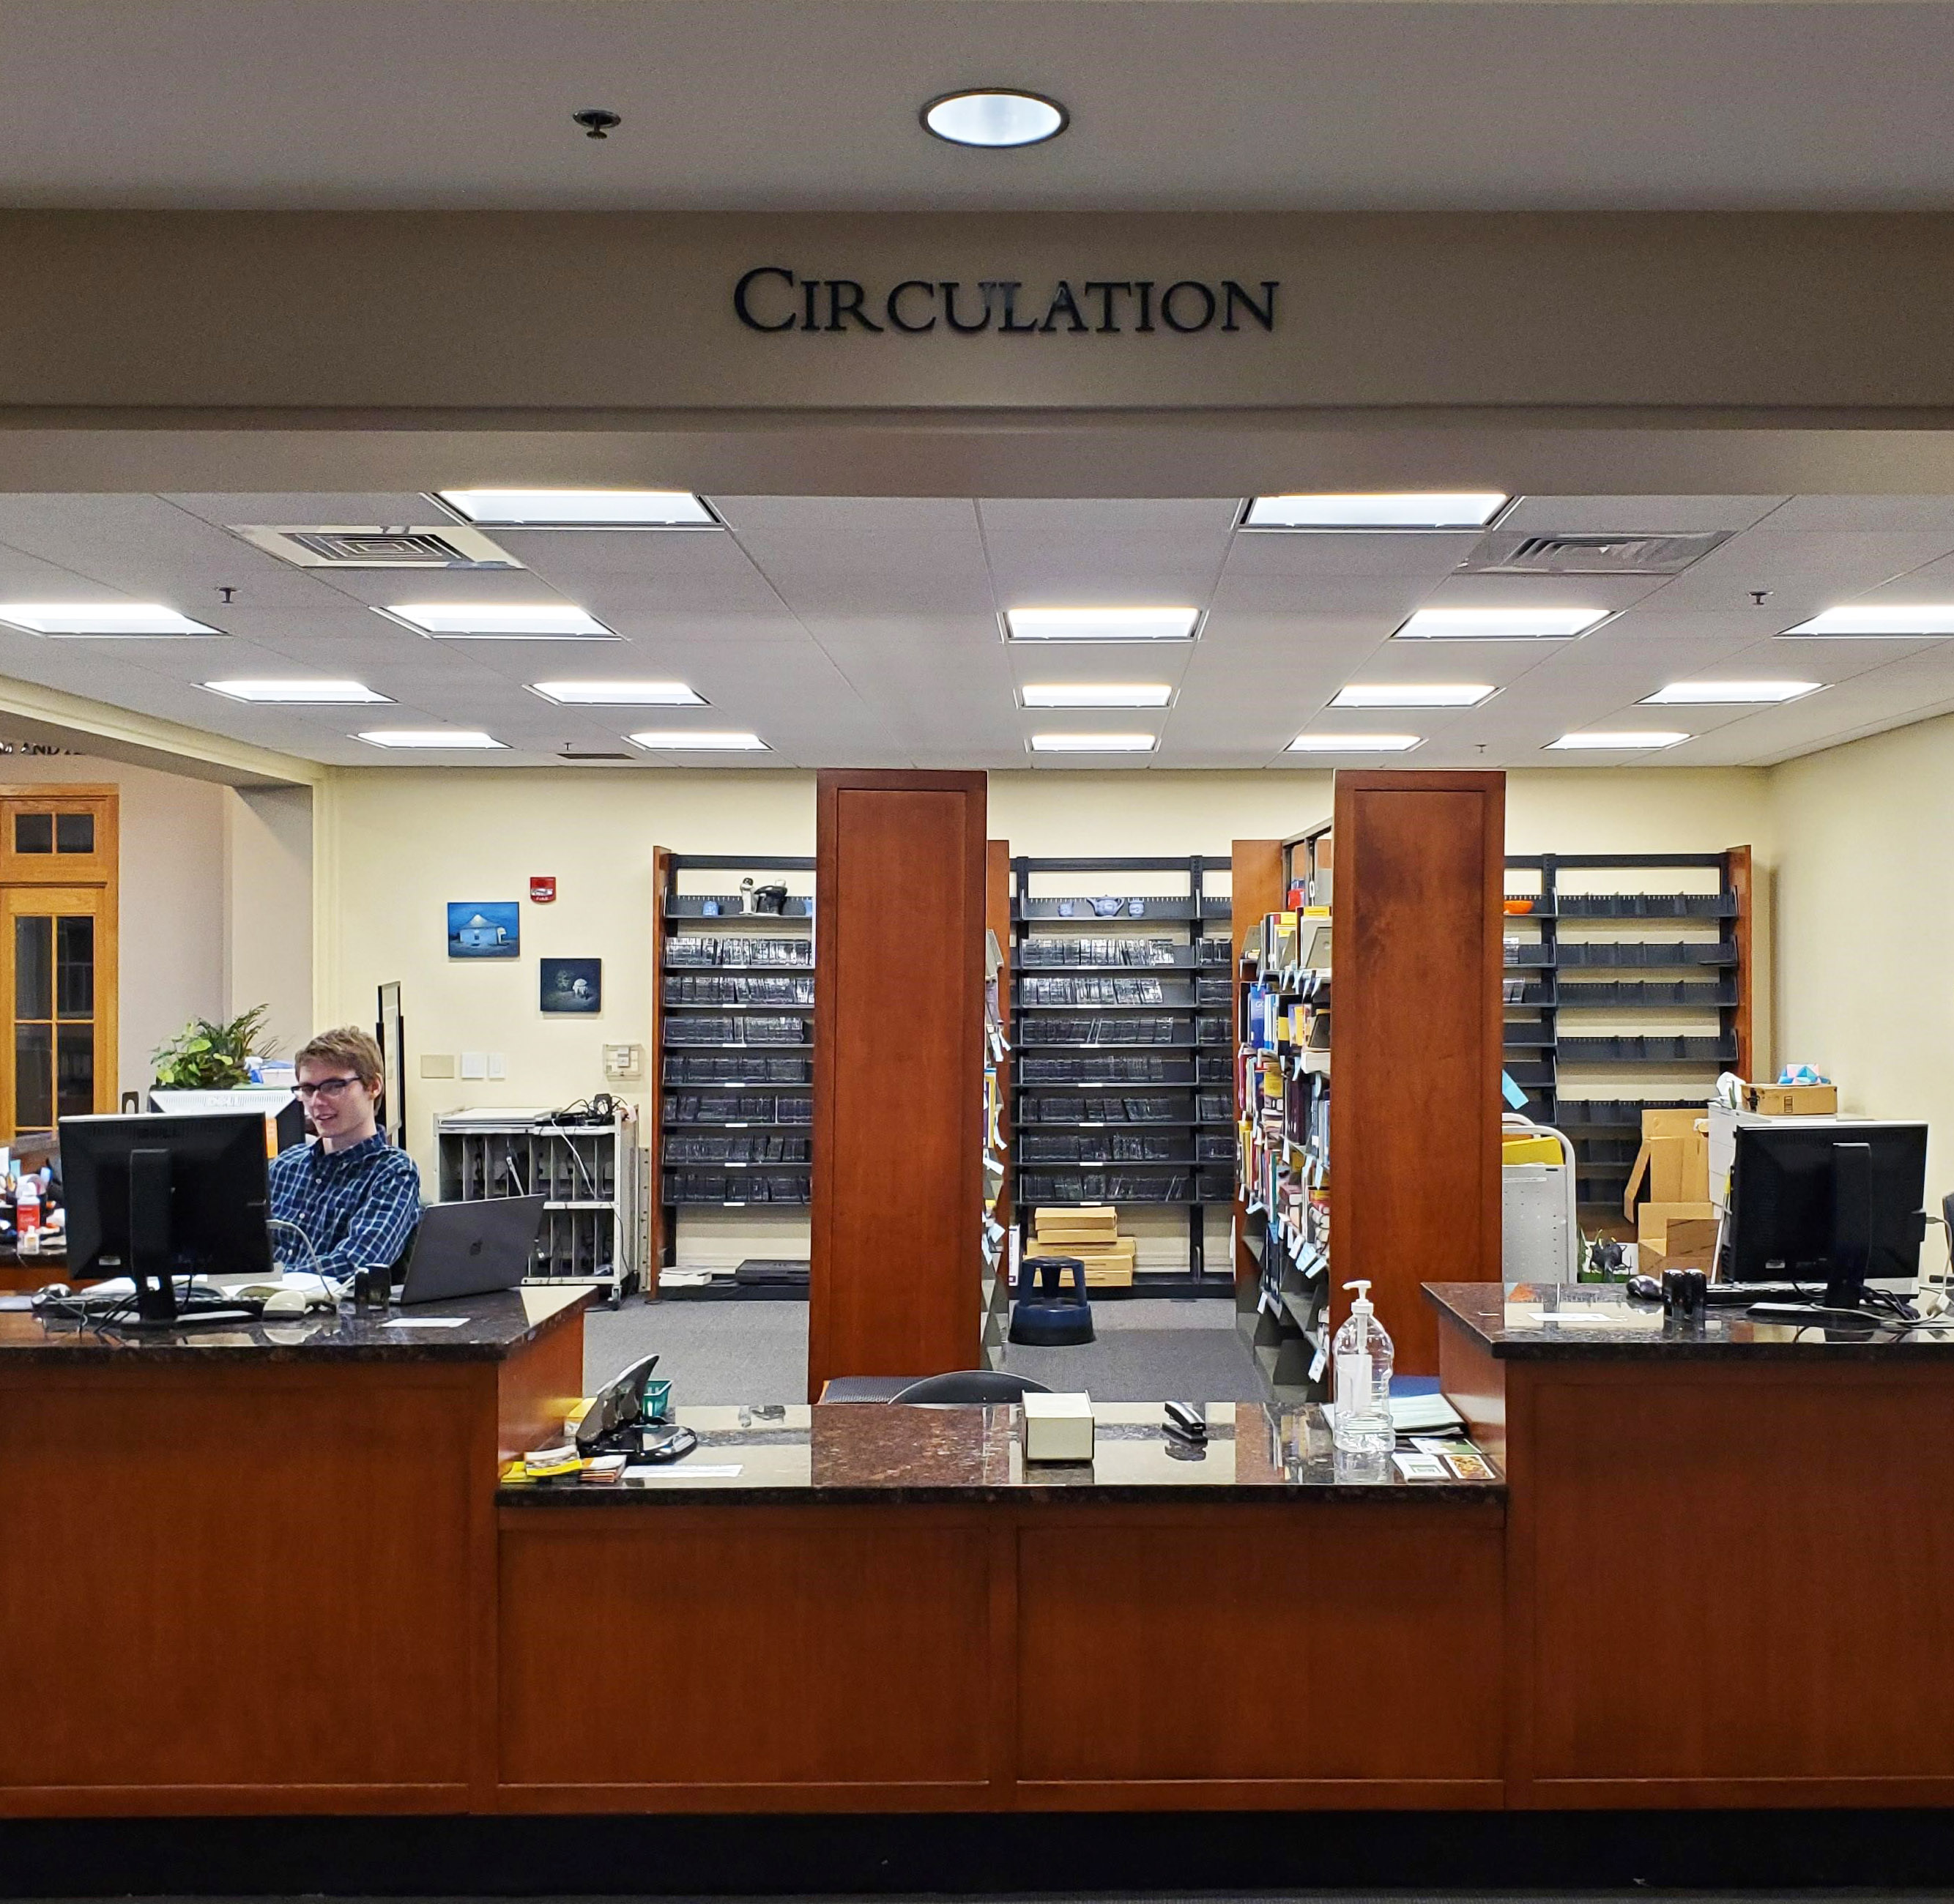 image of circulation desk